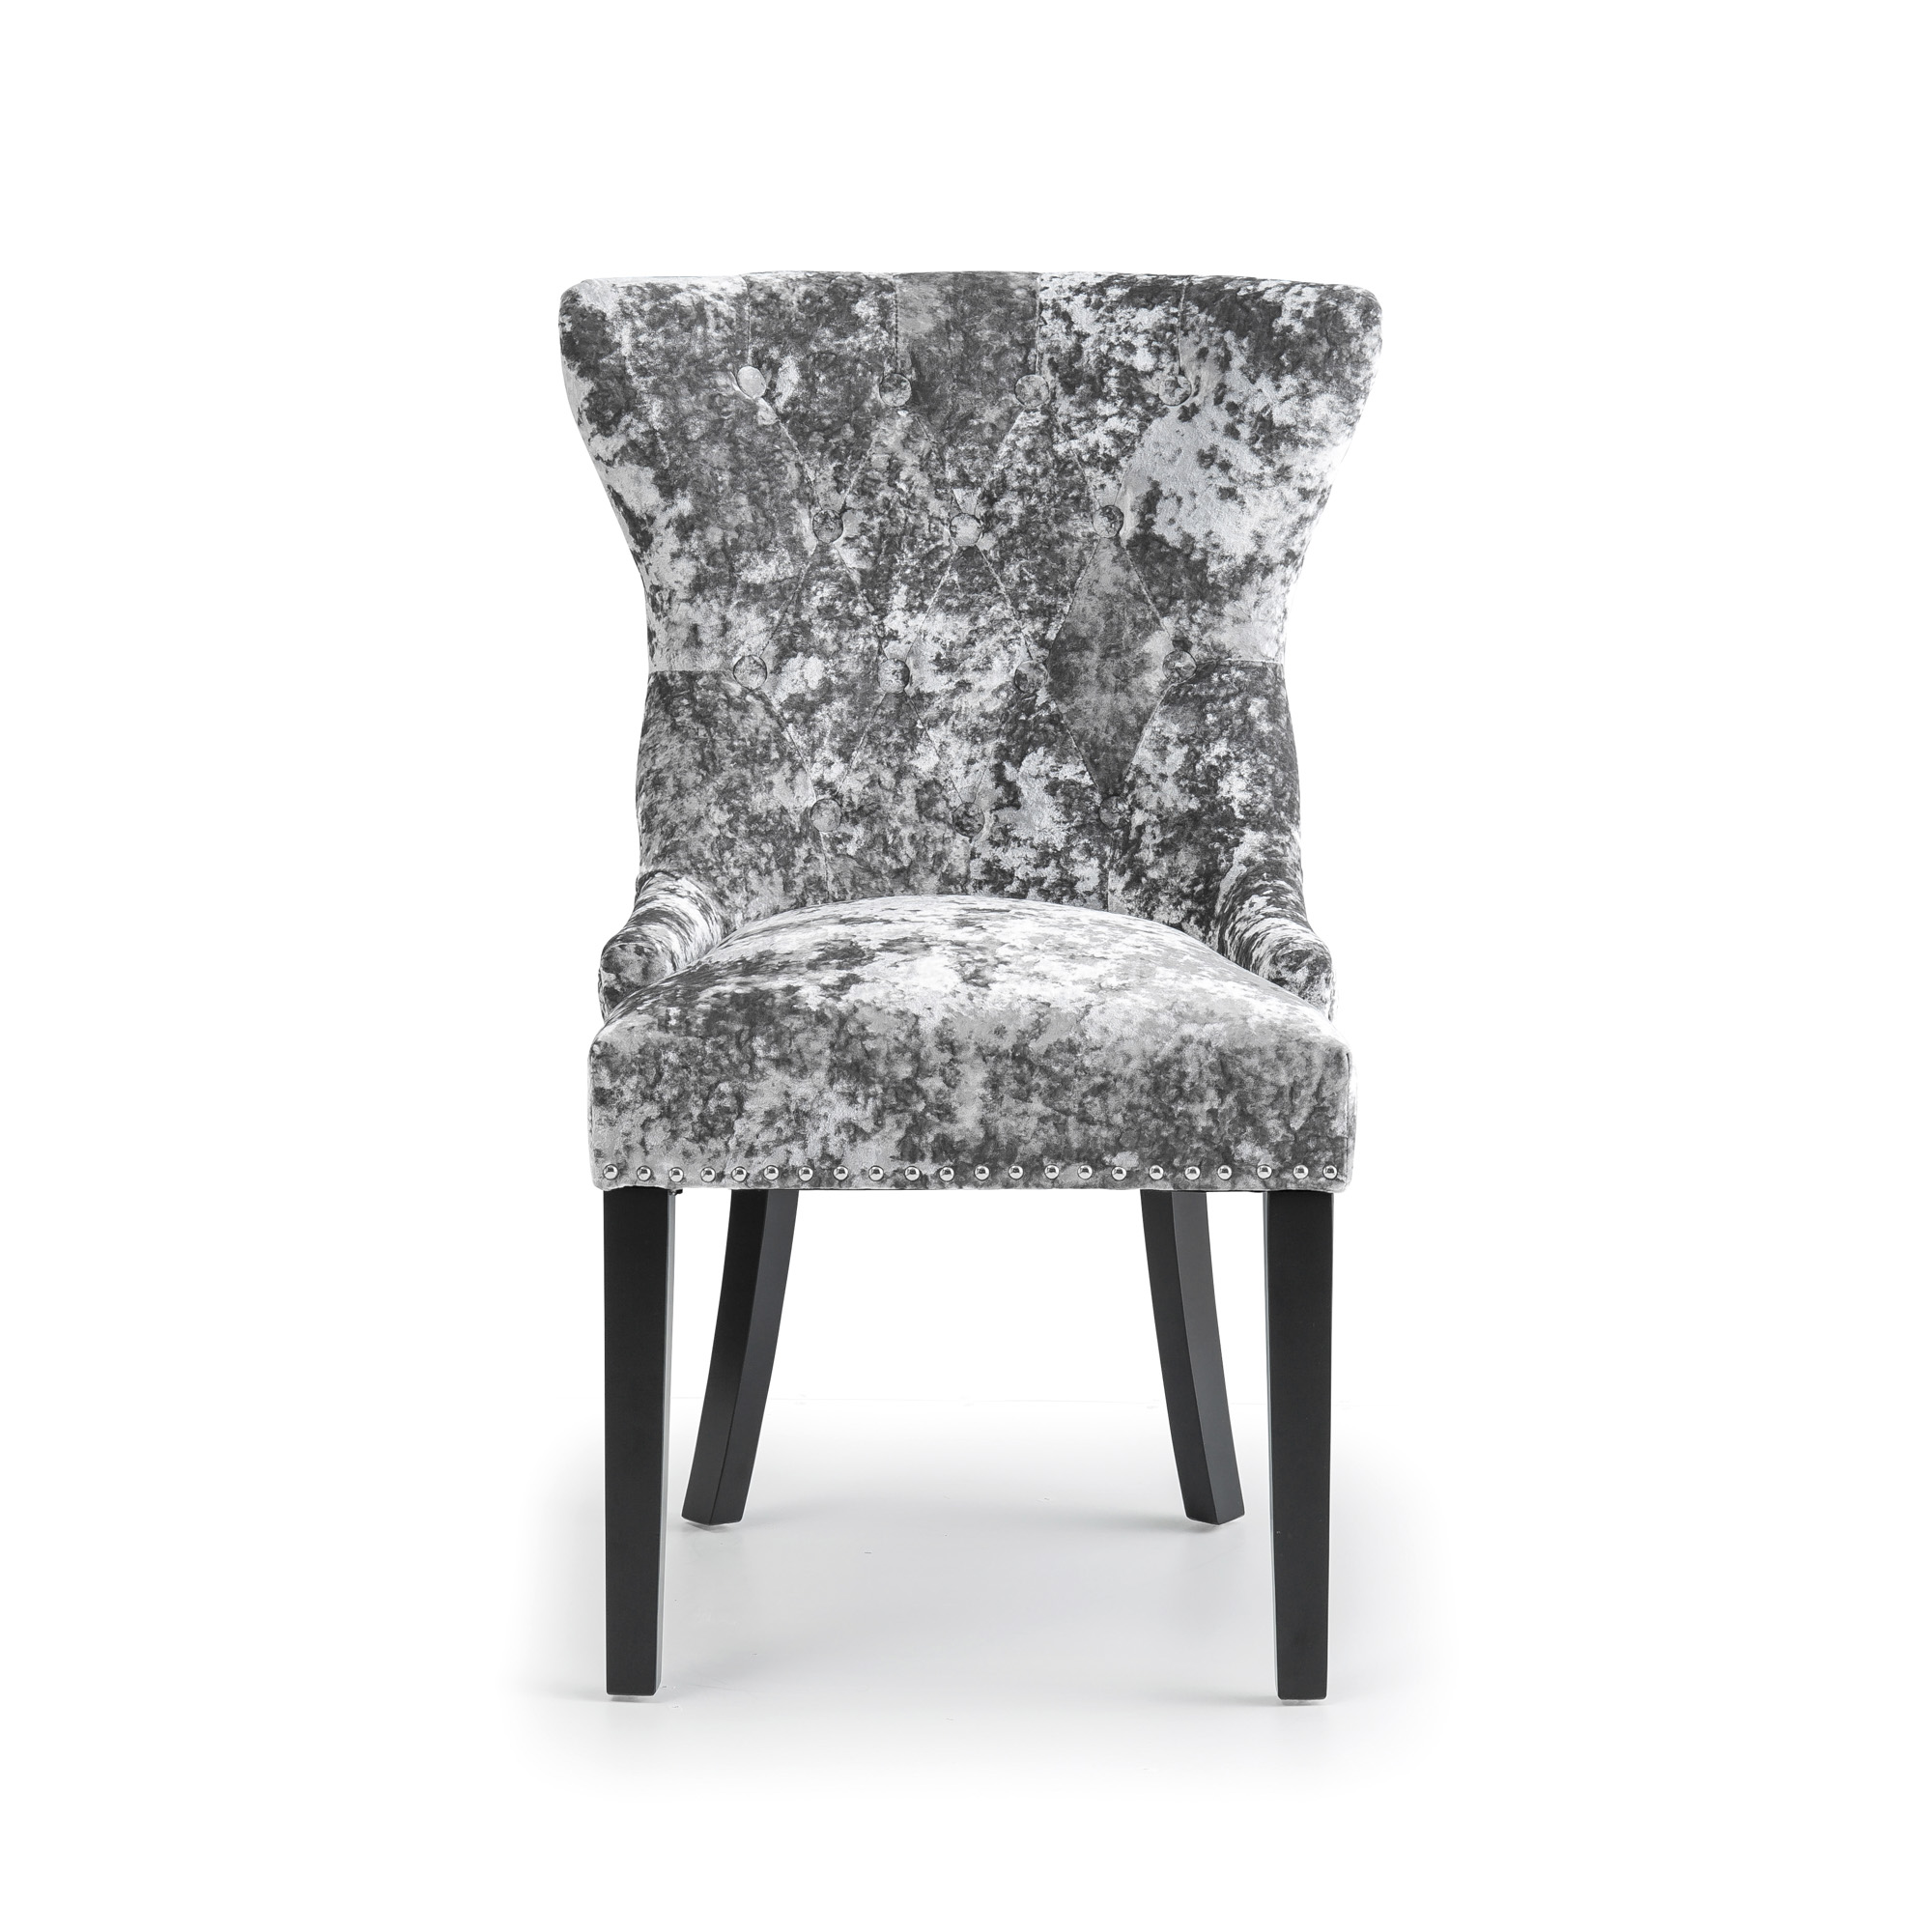 Premium Grey Crushed Velvet Dining Chair with Black Legs